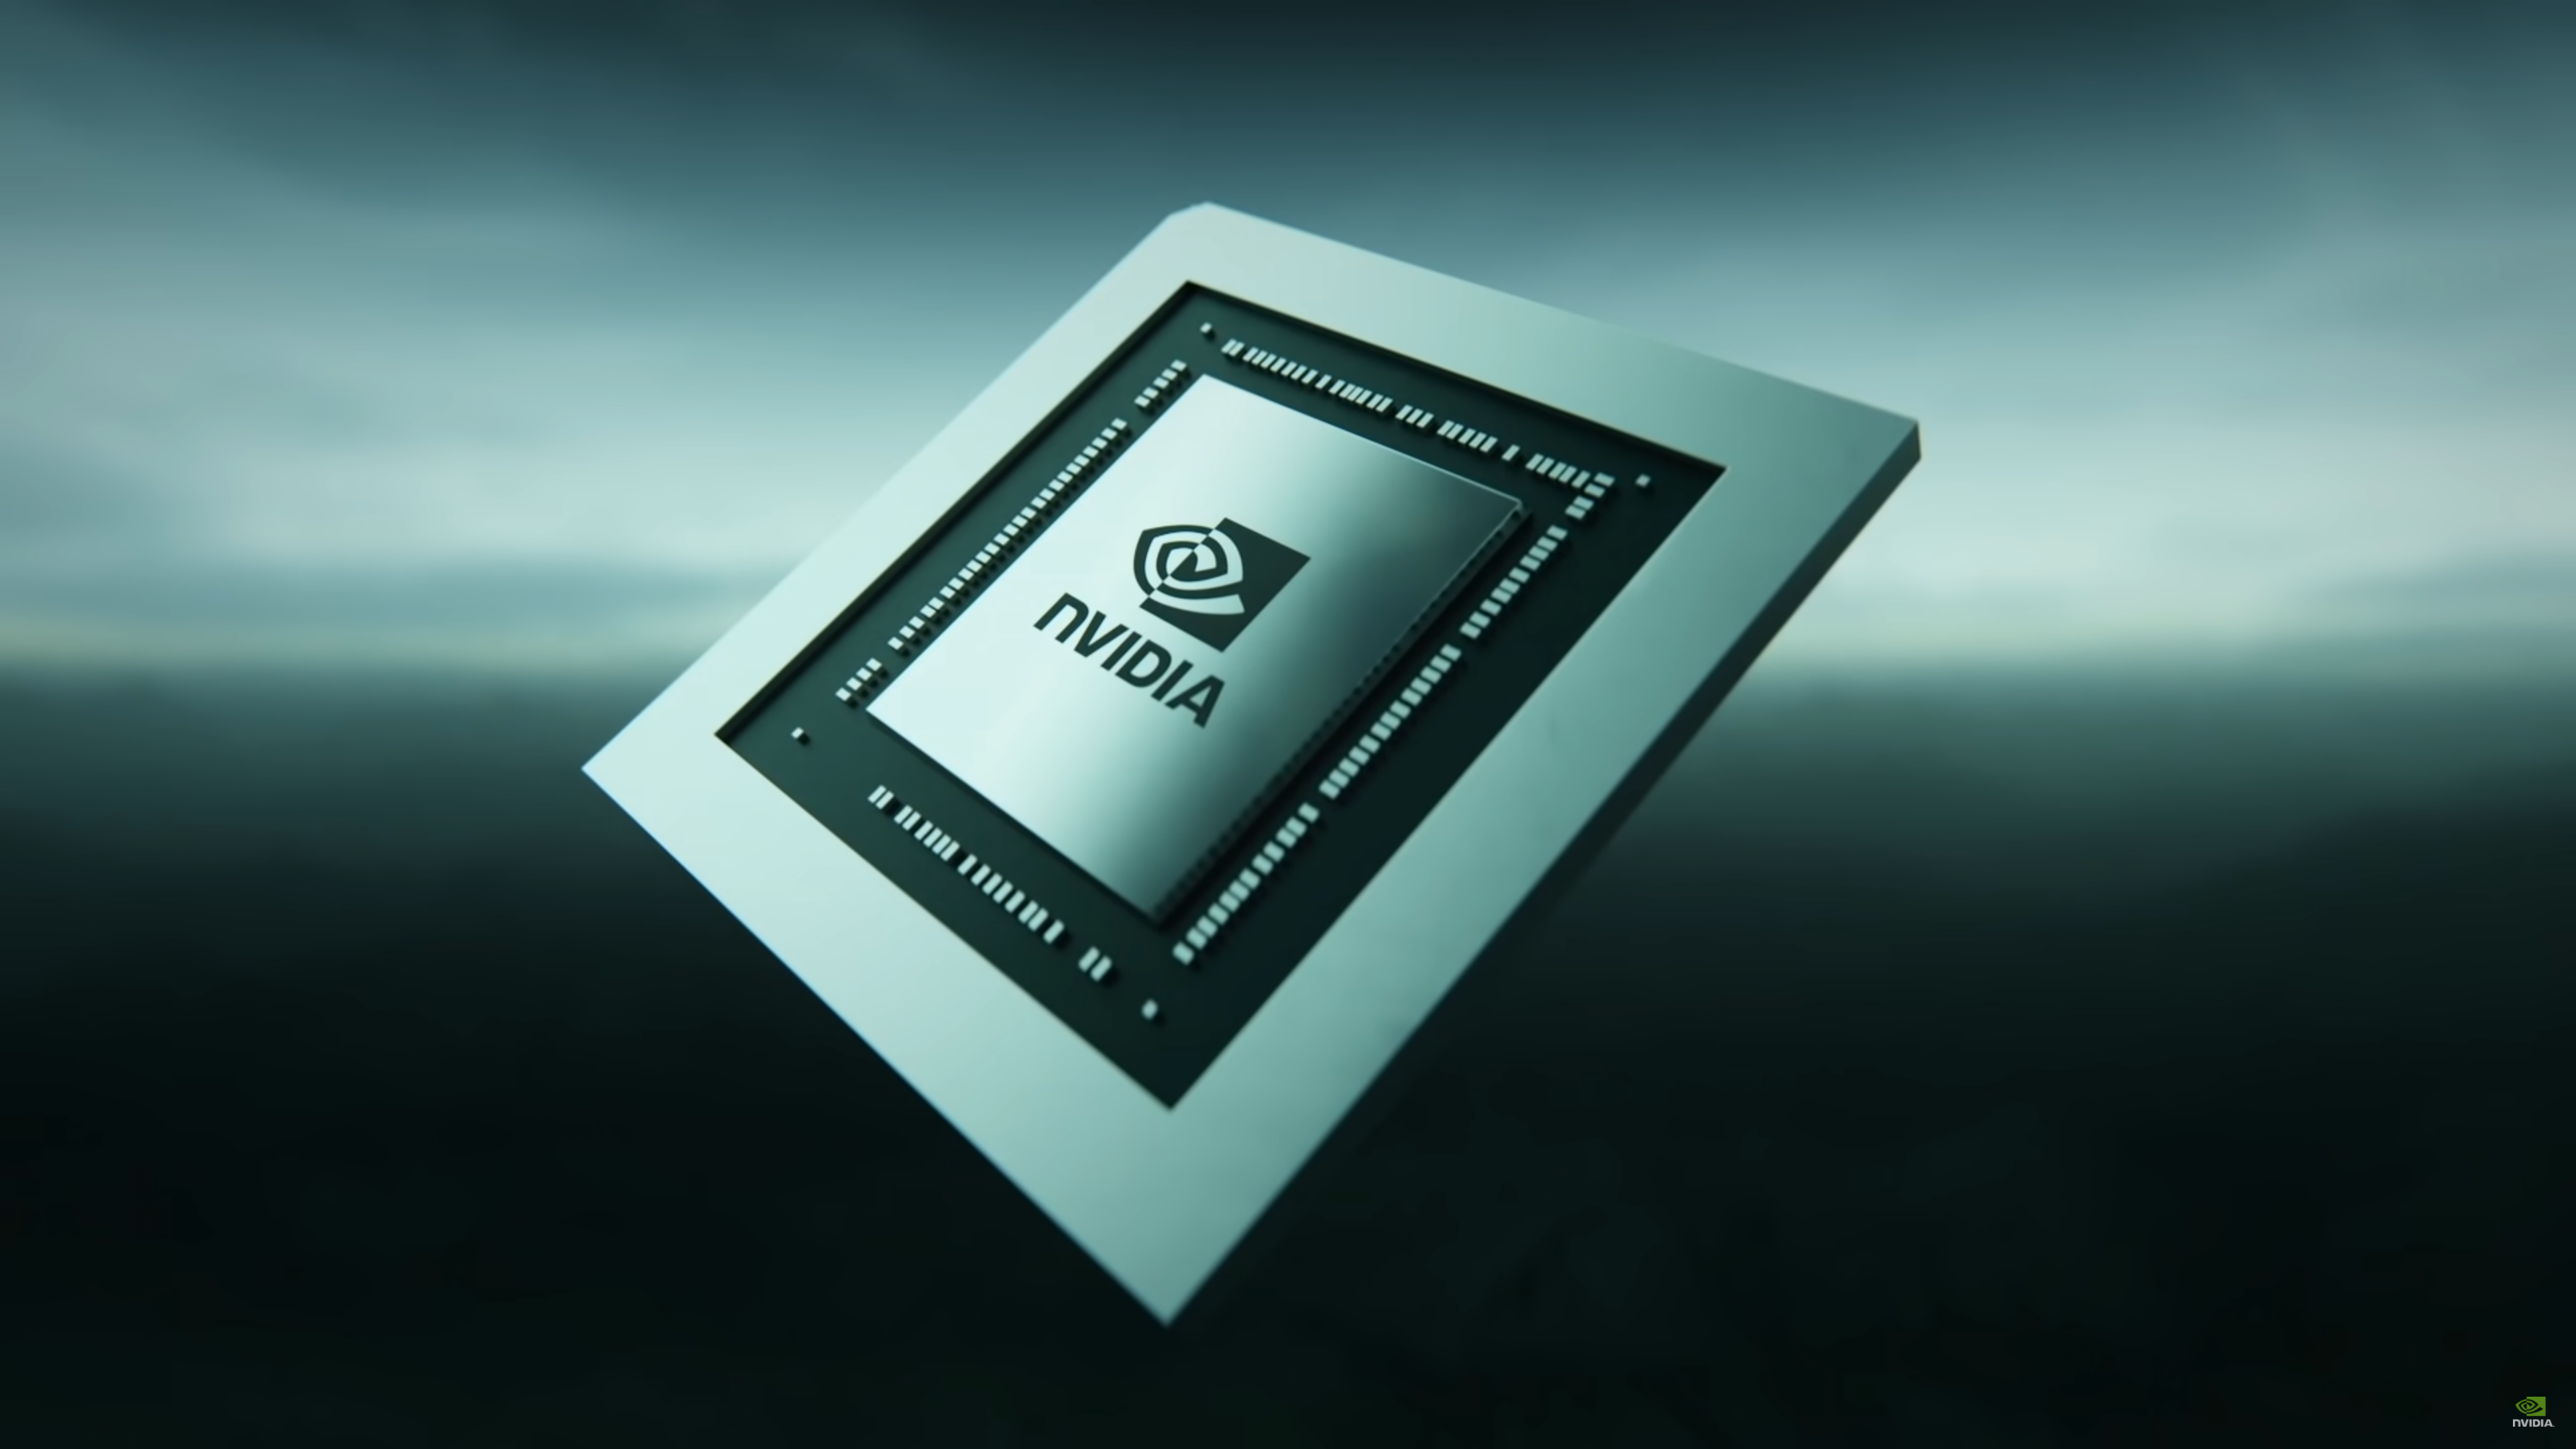 Is The Nvidia CMP Series Anti-Consumerists? Intentions of The Series Looks To Be To Kill Second-Hand Resale Market